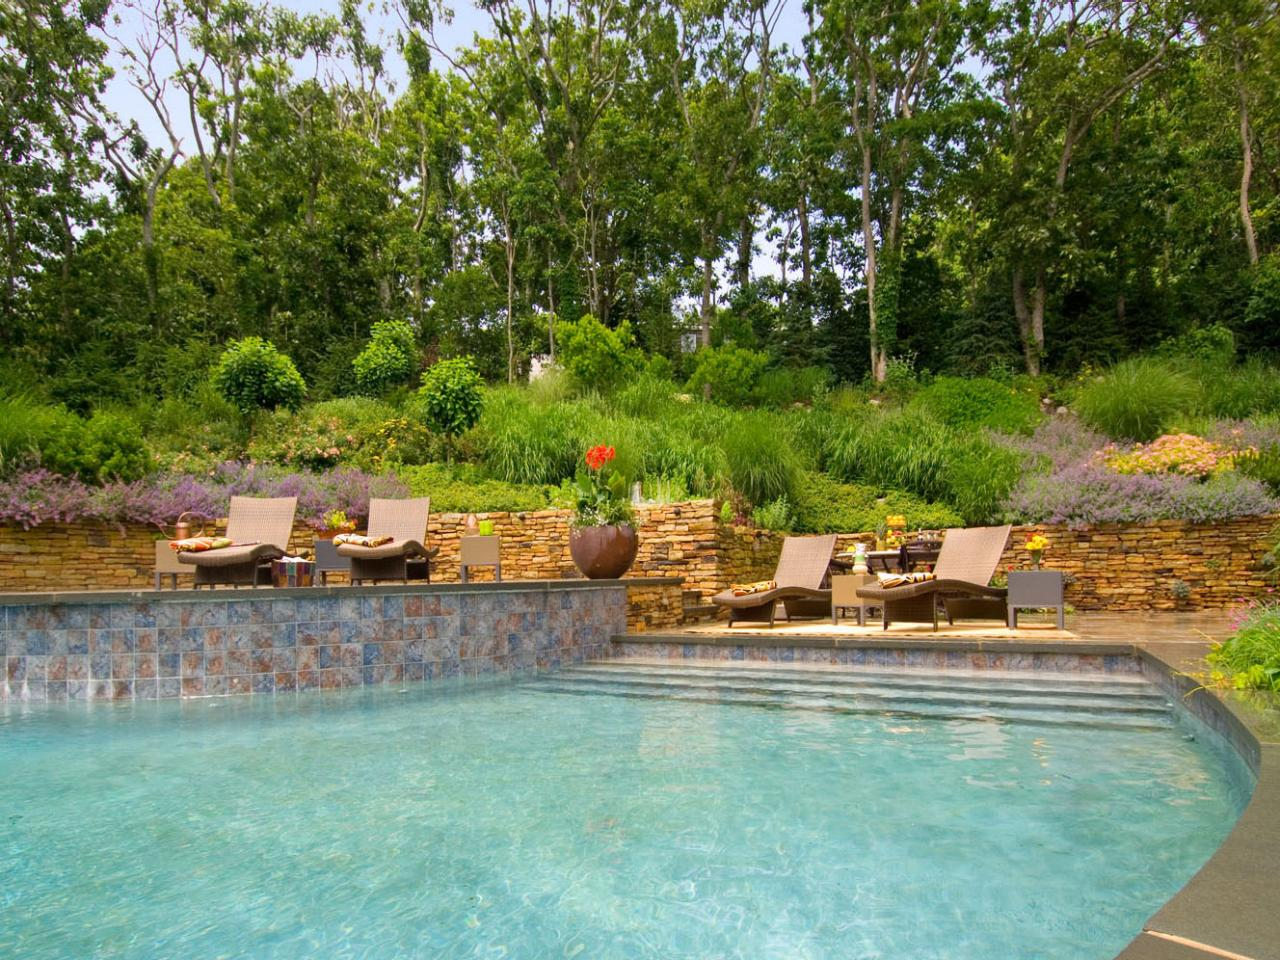 Tiered Backyard With Pool : outdoor pool with stacked stone retaining wall this poolscape includes